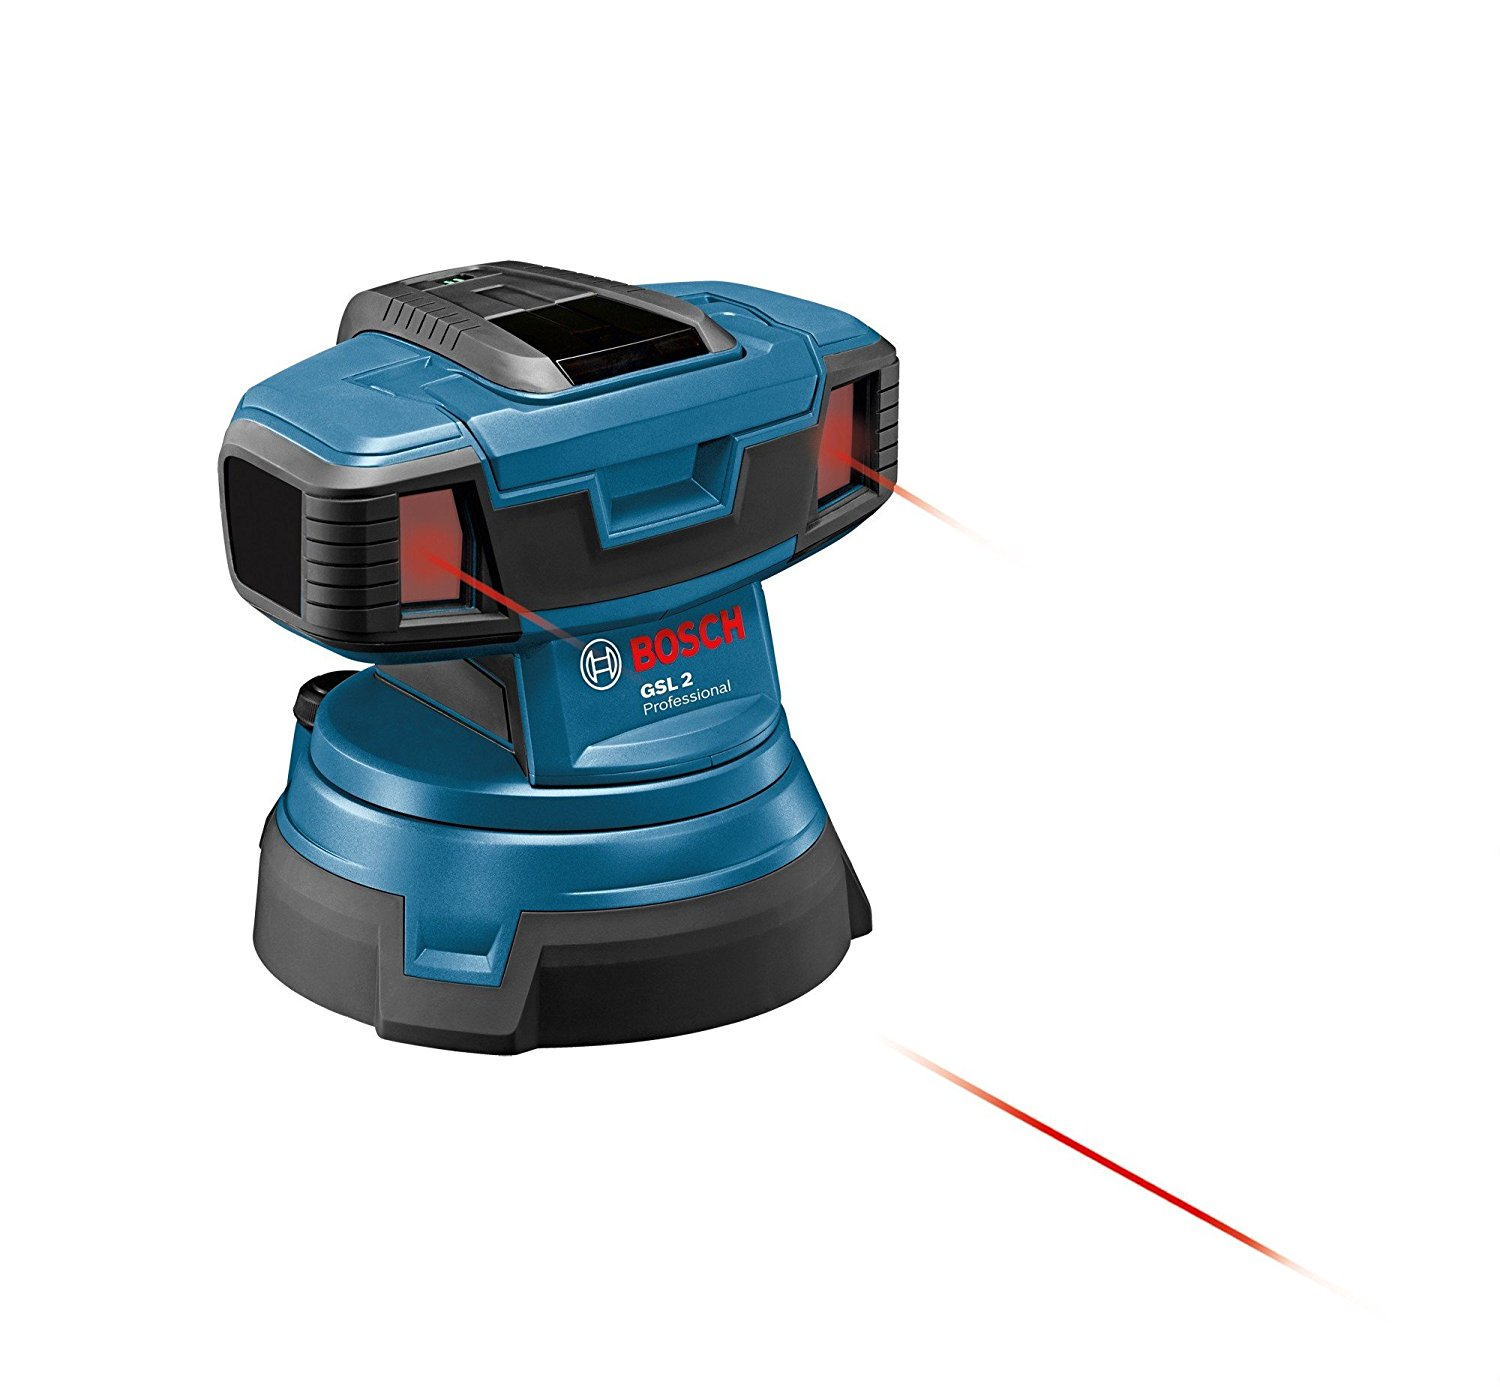 Construction Bosch GSL 2 Surface